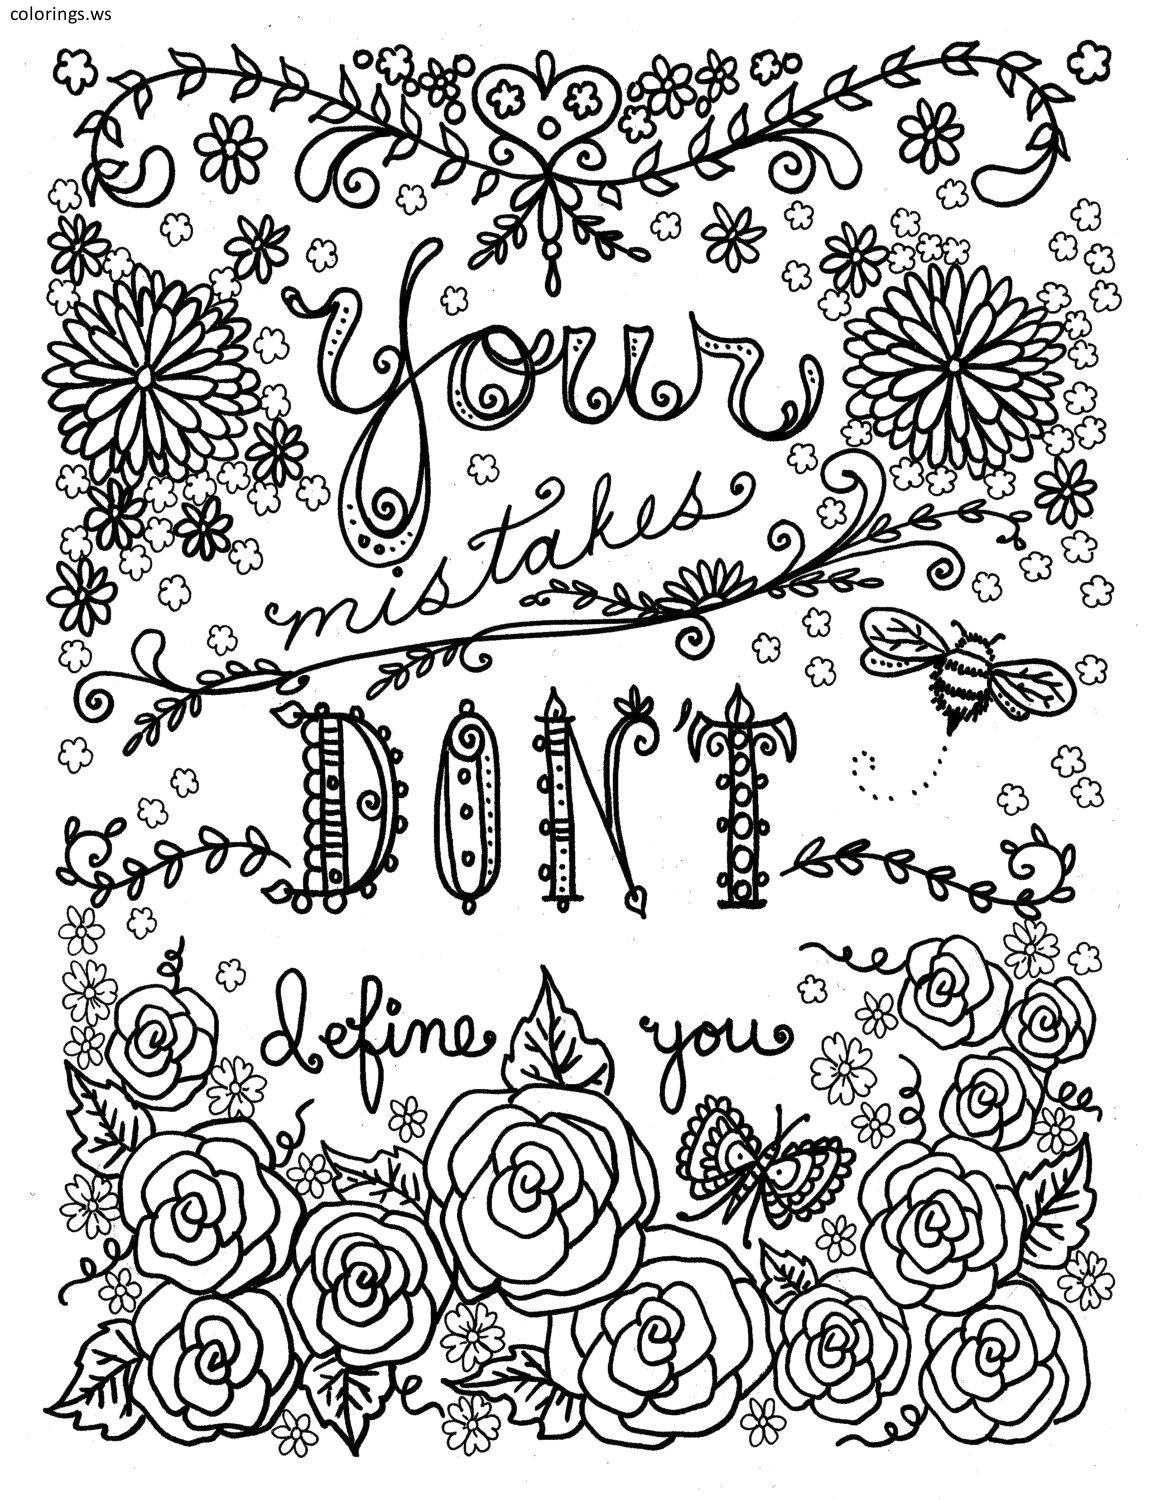 Mistakes Sayings Coloring Page, Sayings Coloring Pages